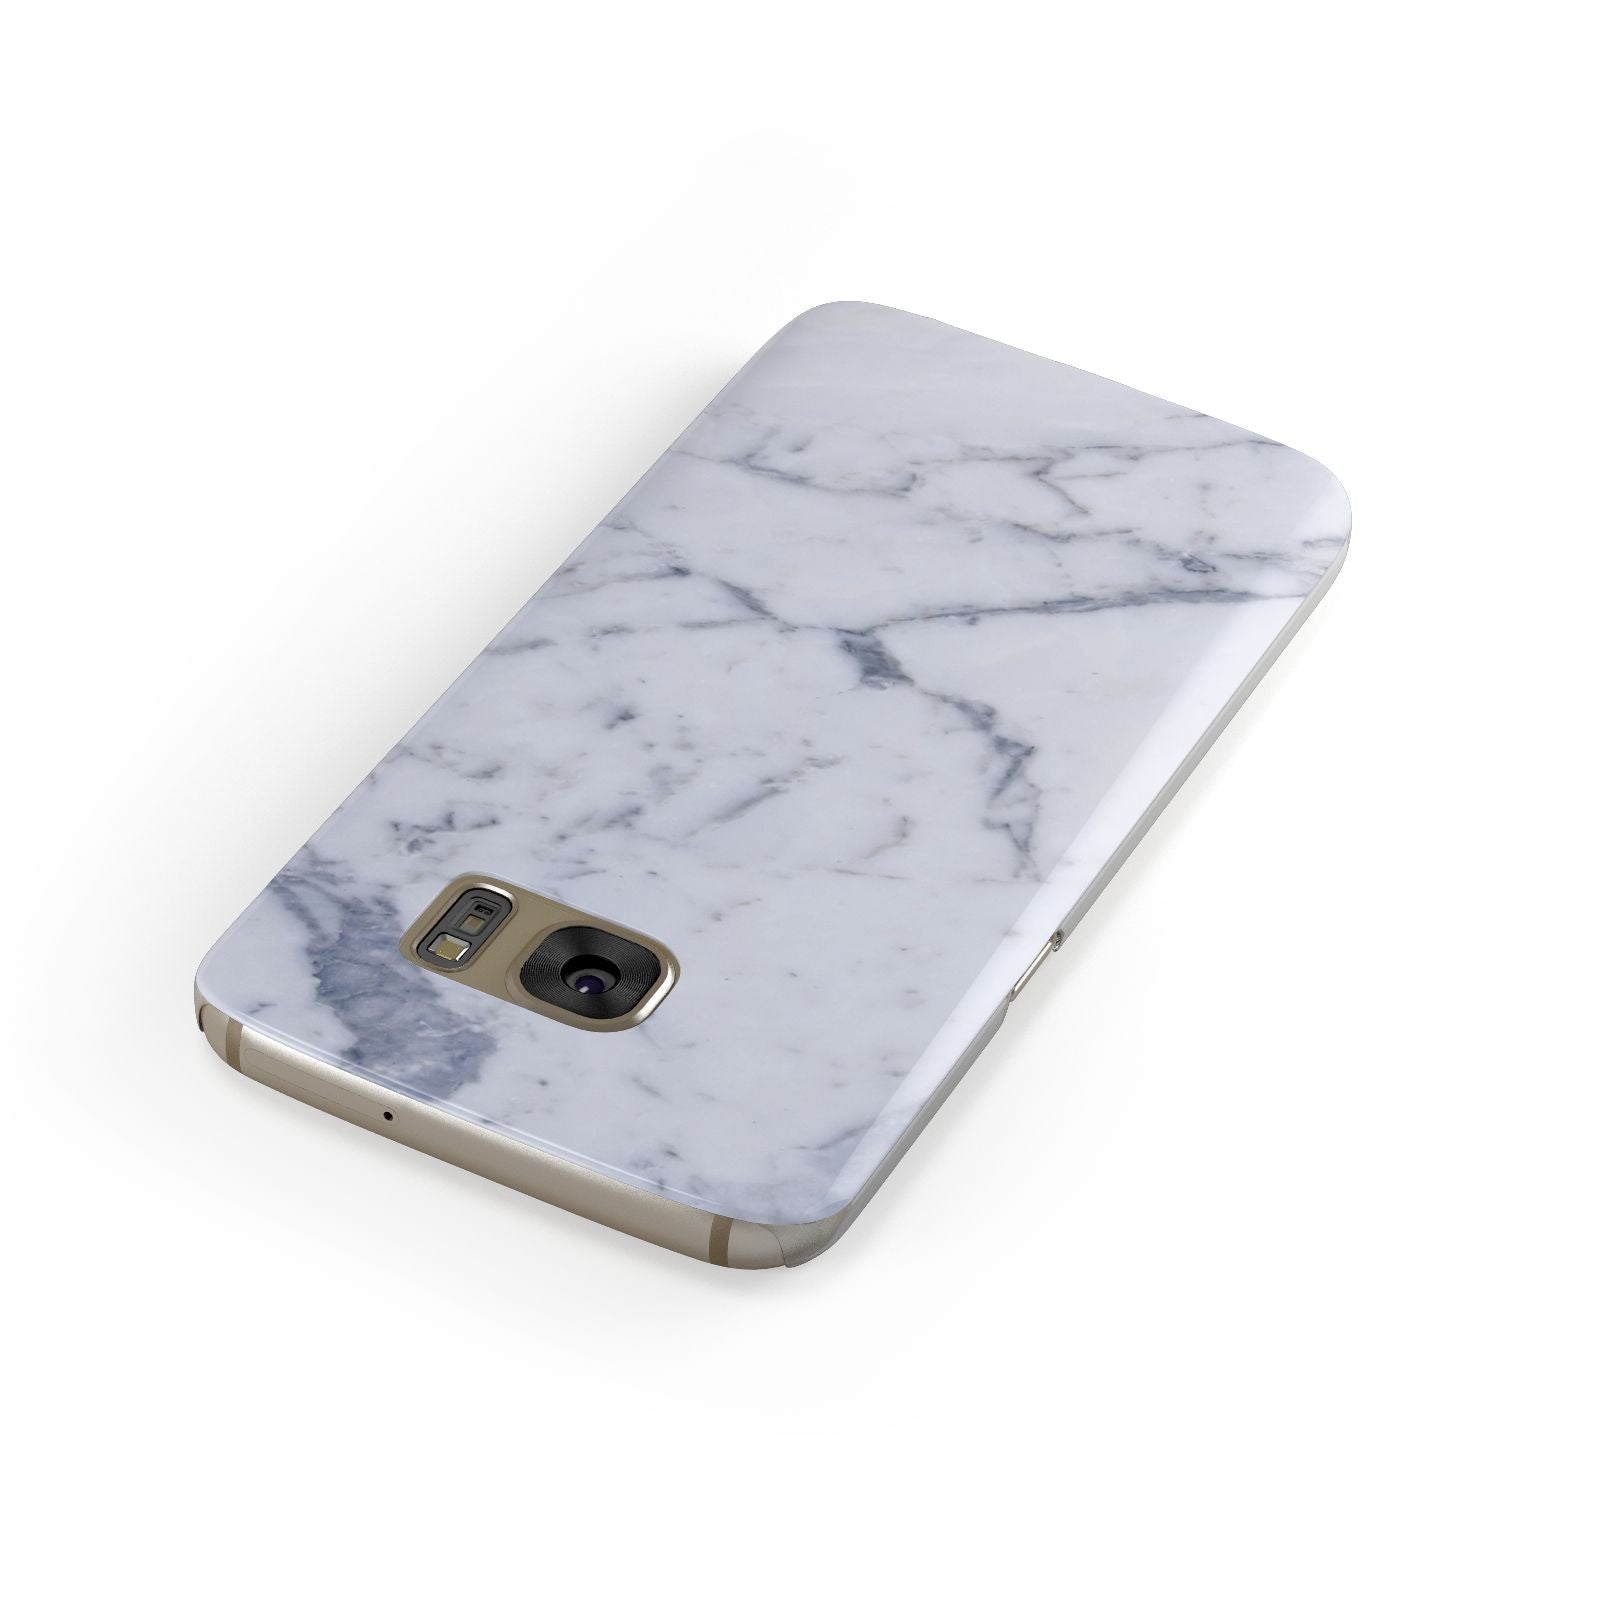 Faux Marble Grey White Samsung Galaxy Case Front Close Up